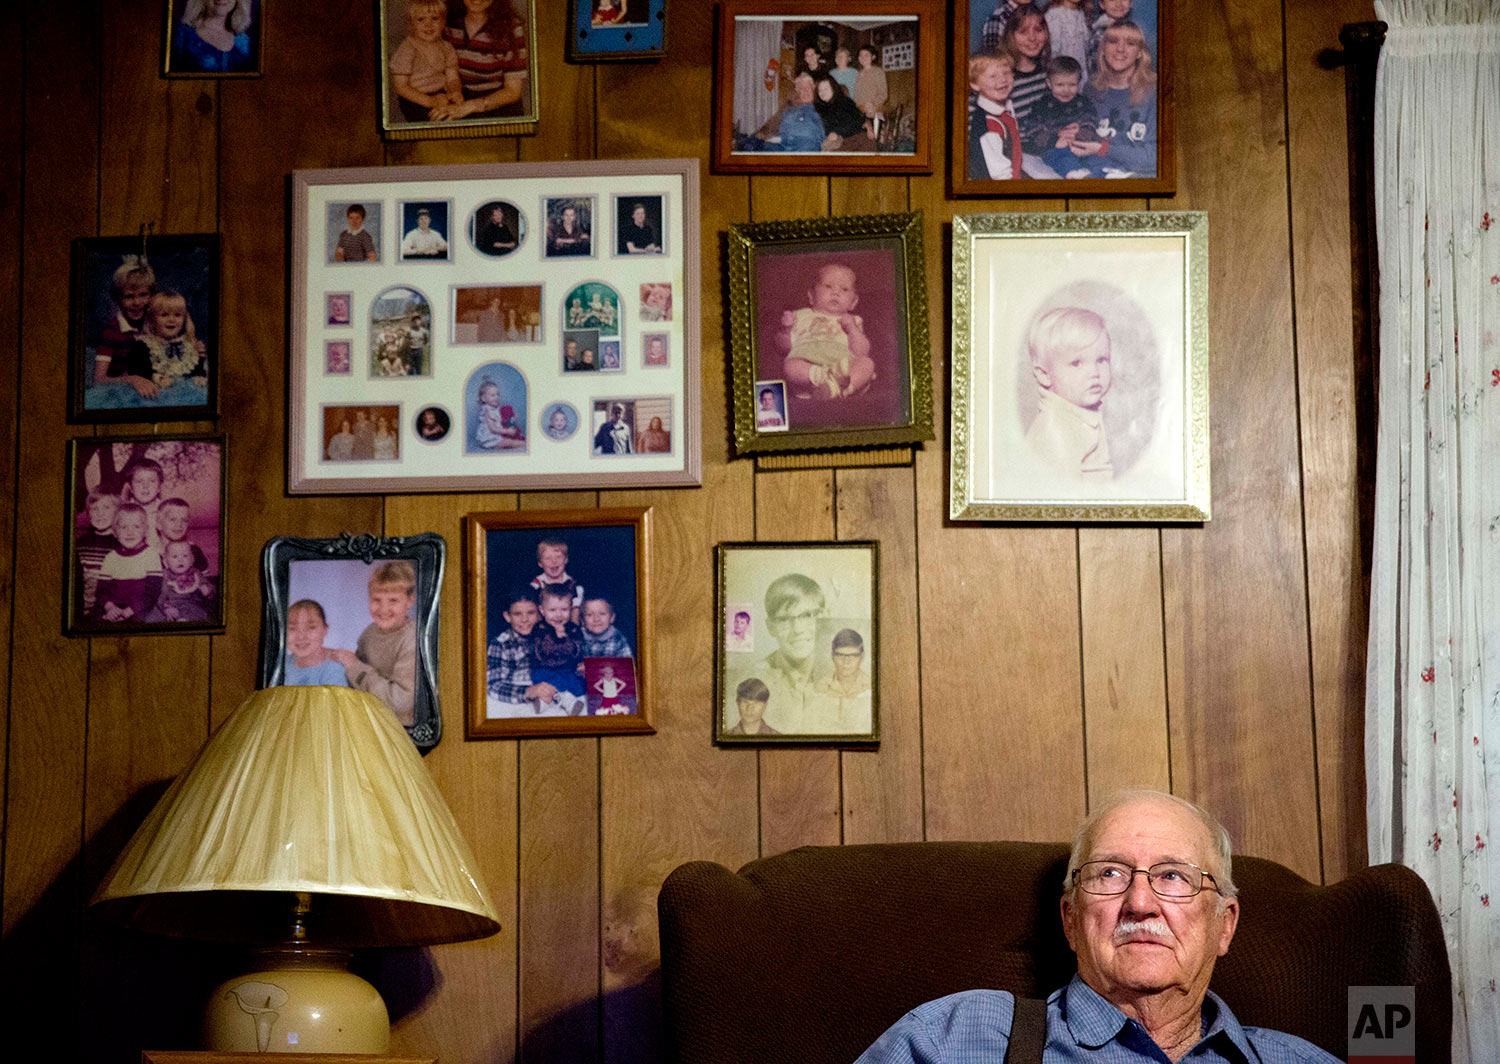 """Clinton Adams, believed to be the only living witness to the 1946 lynching of two black couples by a white mob, sits in his home in Winder, Ga., Thursday, Feb. 22, 2018. Adams came forward in 1991 claiming he saw the lynching unfold when he was a 10-year-old while hiding in the bushes near the bridge. """"I never expected them to catch anyone. They're all dead,"""" Adams said of Georgia's top law enforcement agency closing its latest investigation last month, shortly after the FBI concluded its latest review without solving the case. """"I just want it to be over and live my life,"""" said Adams who feared for his safety from the KKK. (AP Photo/David Goldman)"""